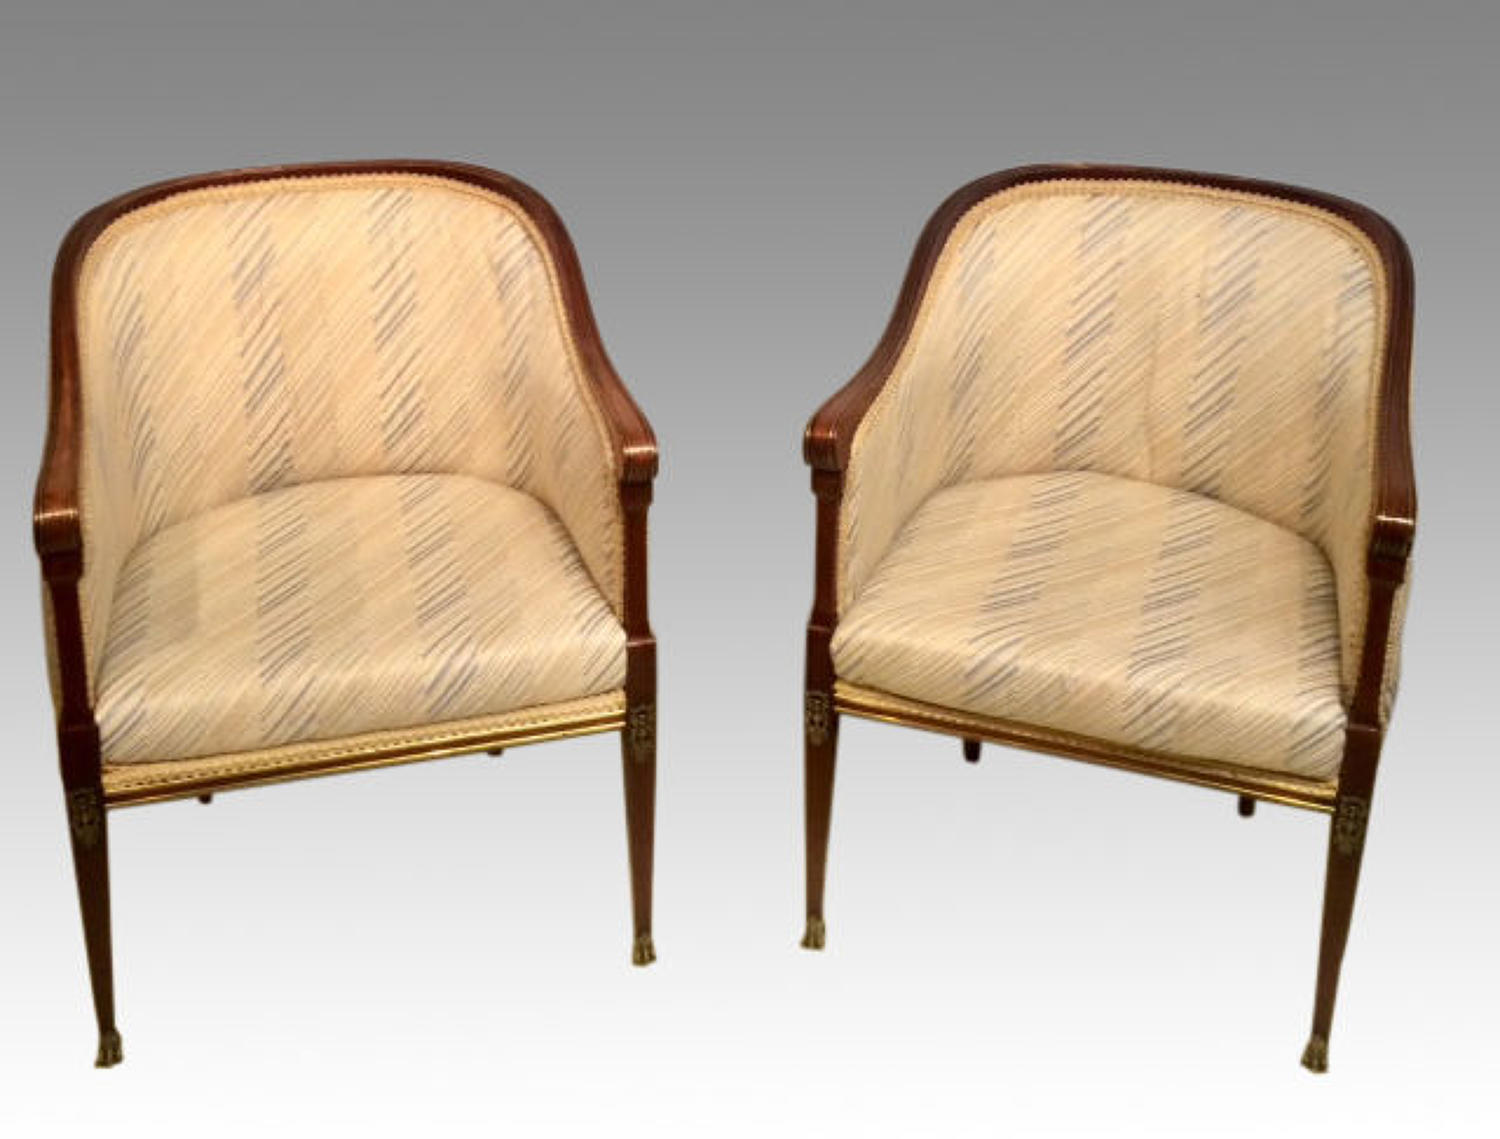 Pair of French empire mahogany armchairs.